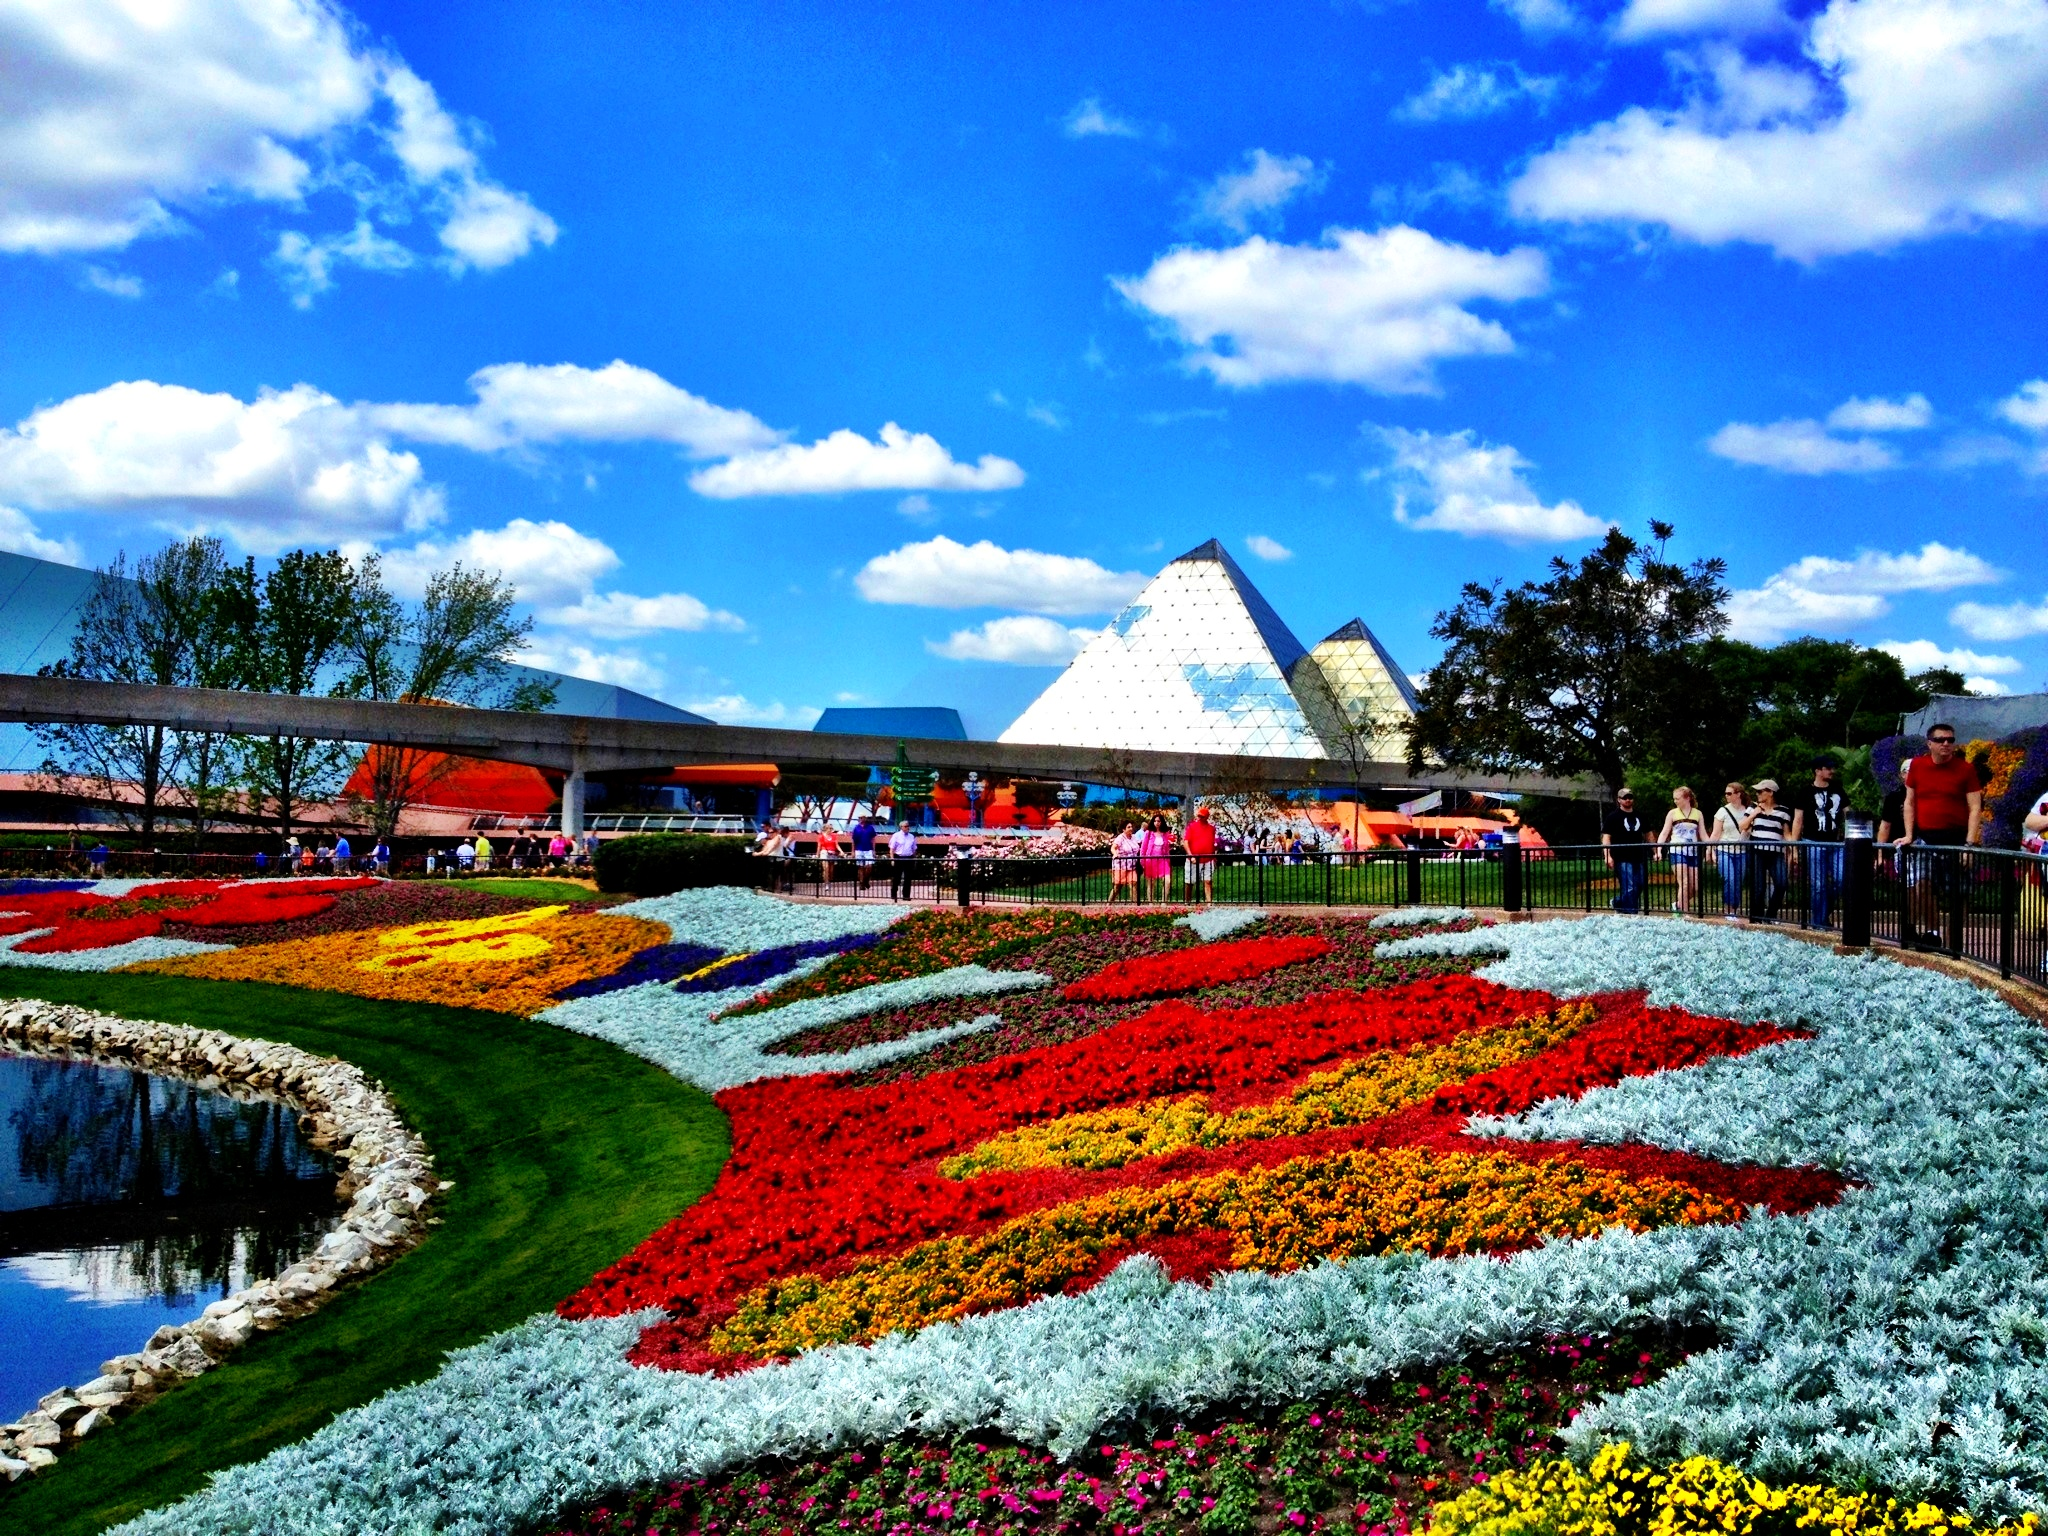 Photo Highlights of the Epcot Flower and Garden Festival